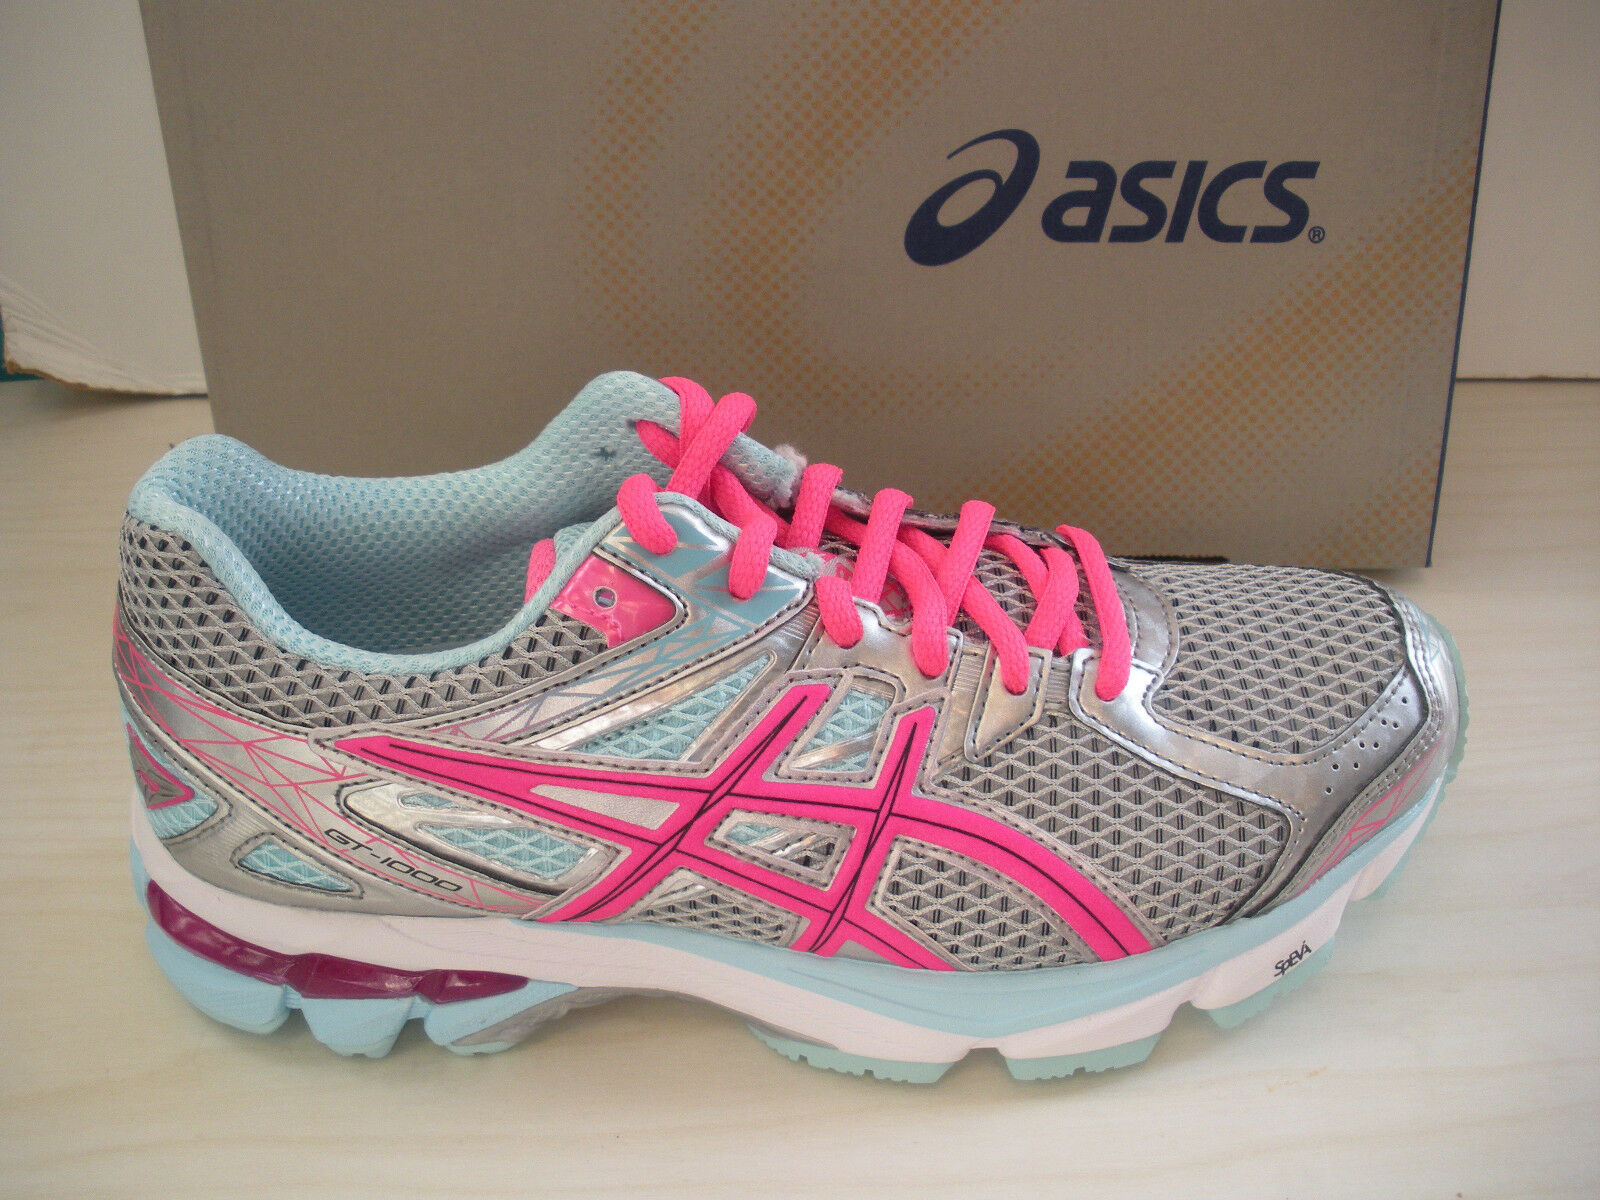 ASICS WOMENS GT-1000 3 RUNNING SHOES-SNEAKERS -T4K8N-9135- LIGHTNING - 6.5,9.5 New shoes for men and women, limited time discount